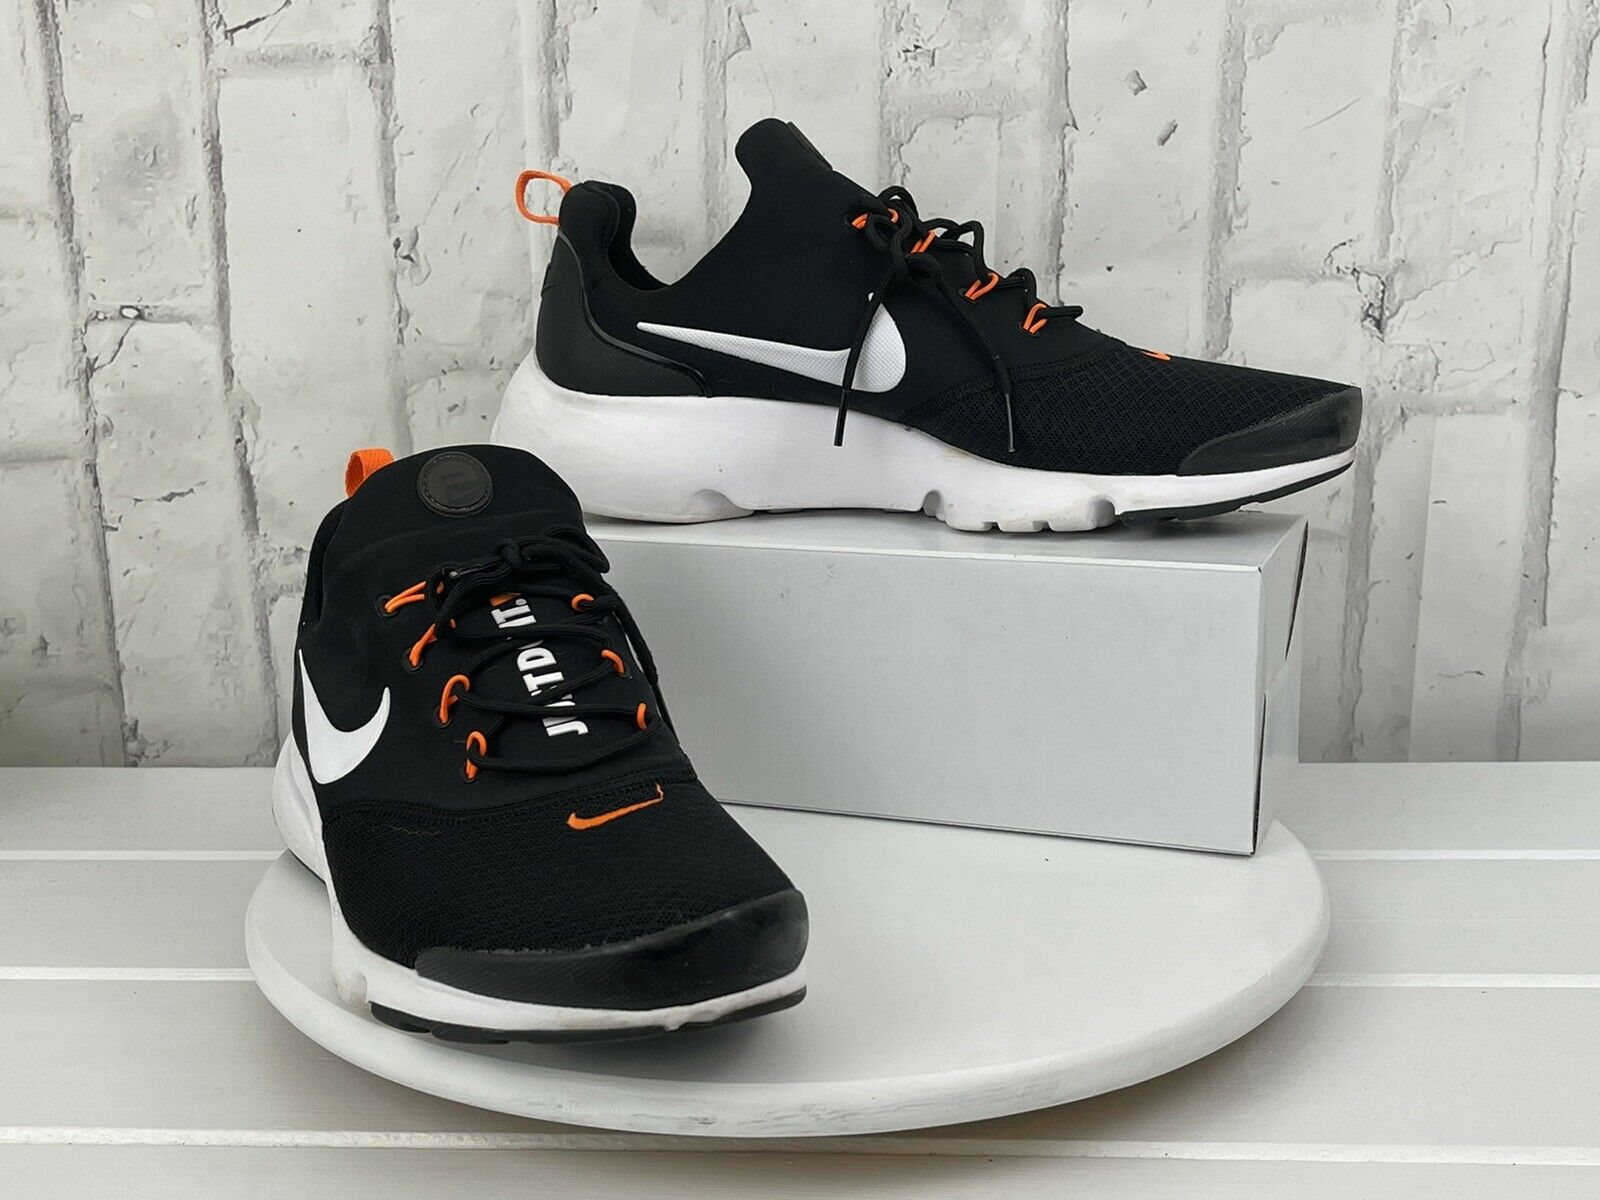 Size 11 - Nike Air Presto Fly Just Do It 2019 for sale online   eBay